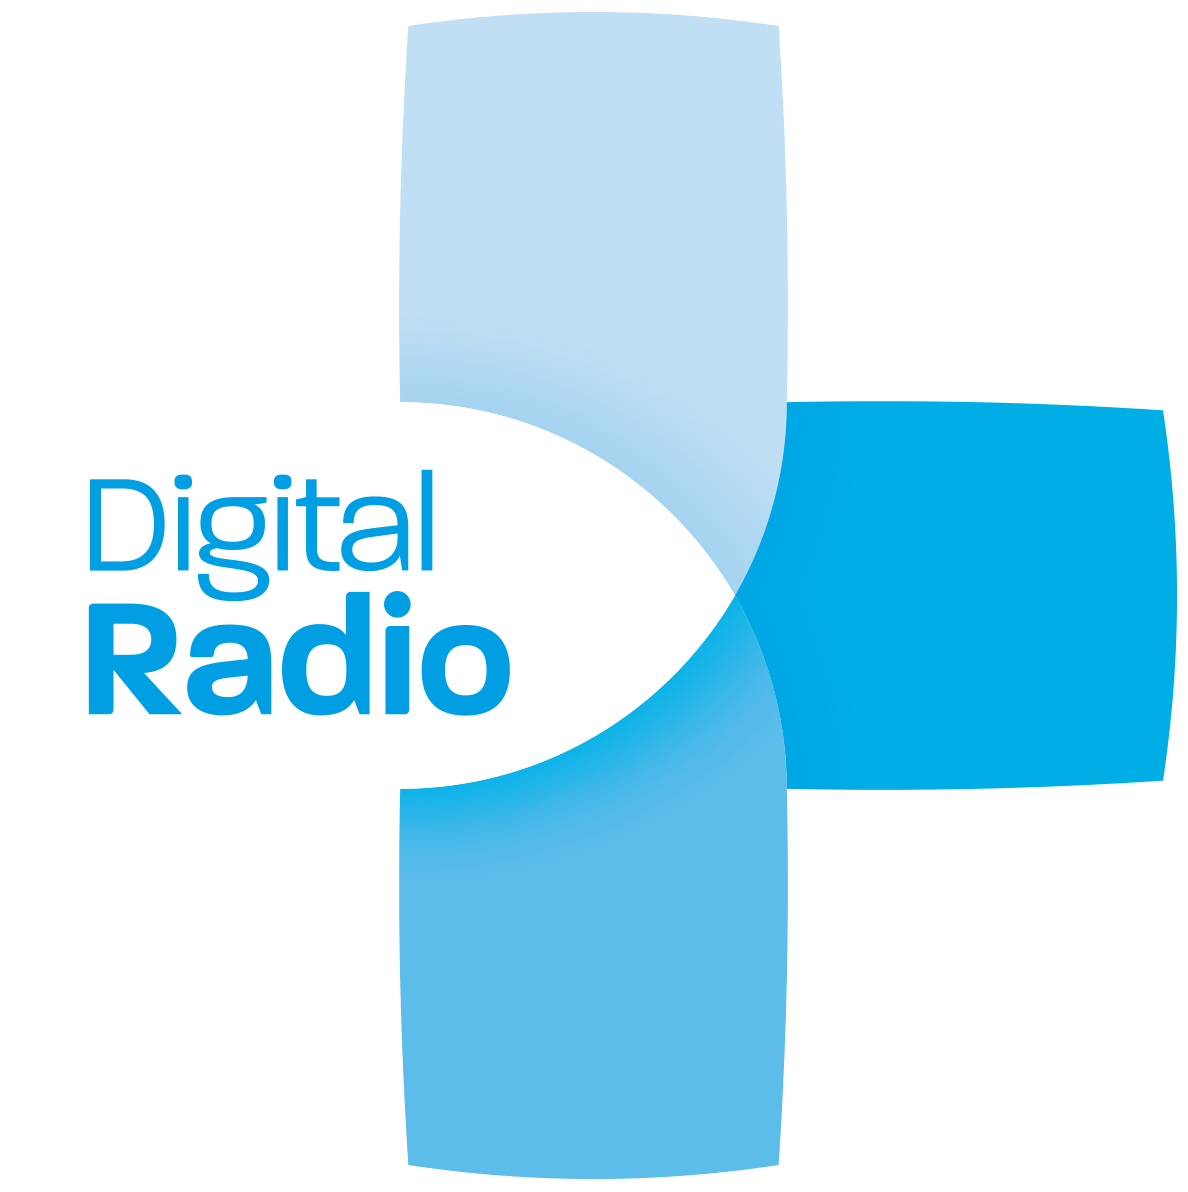 Digital Radio logo